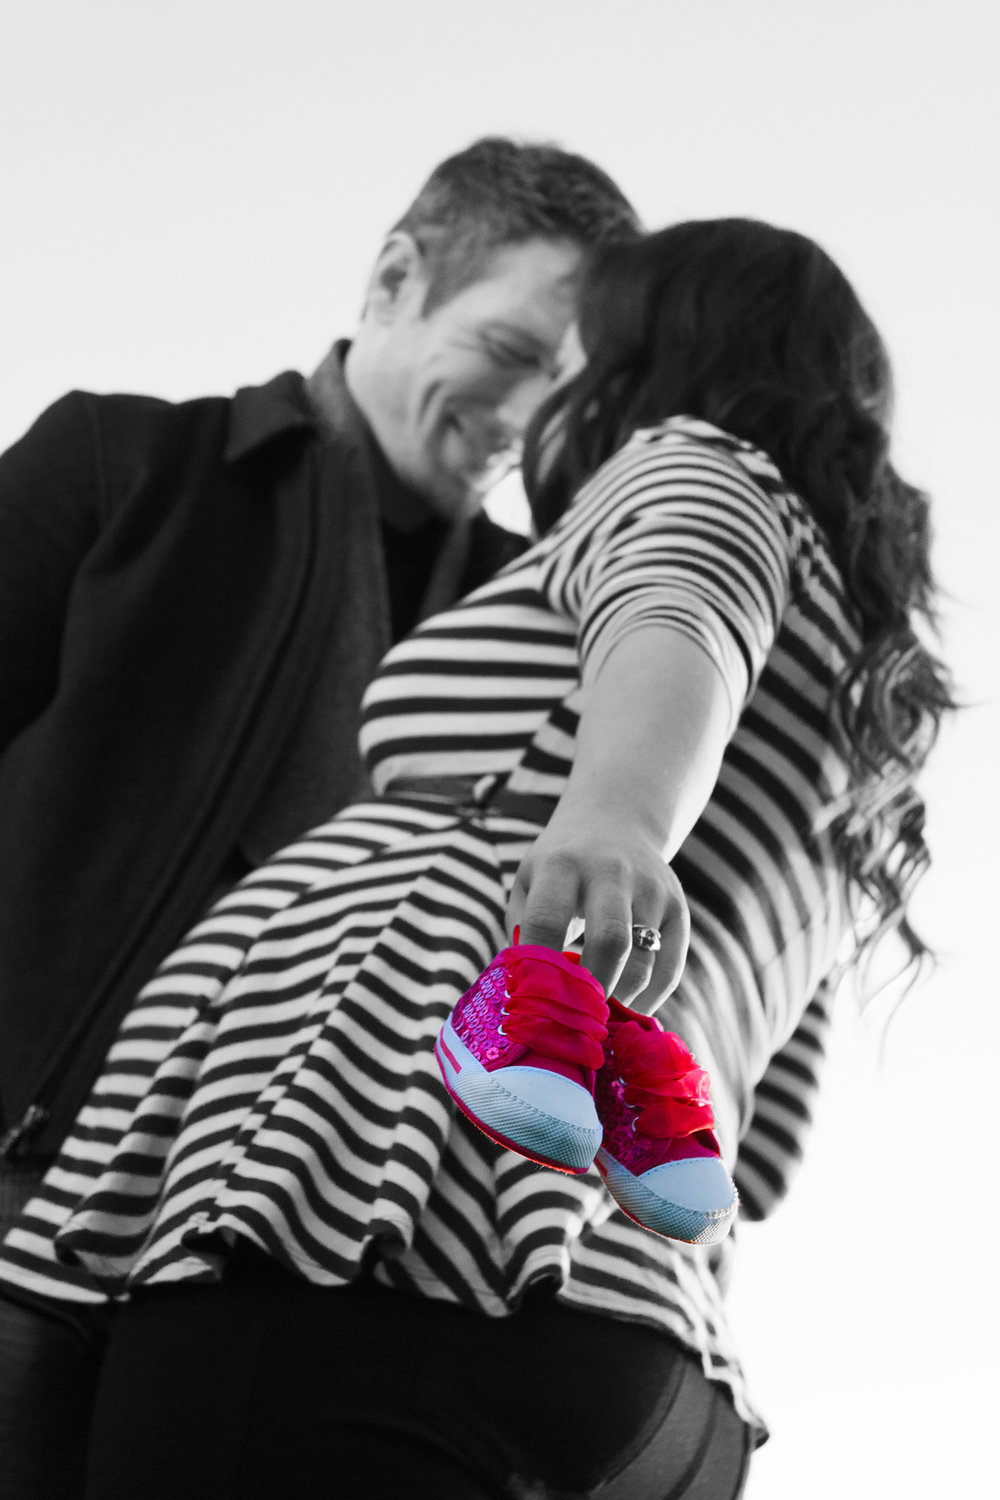 Cortney & Mike Maternity Shoot_20150404-230a.jpg